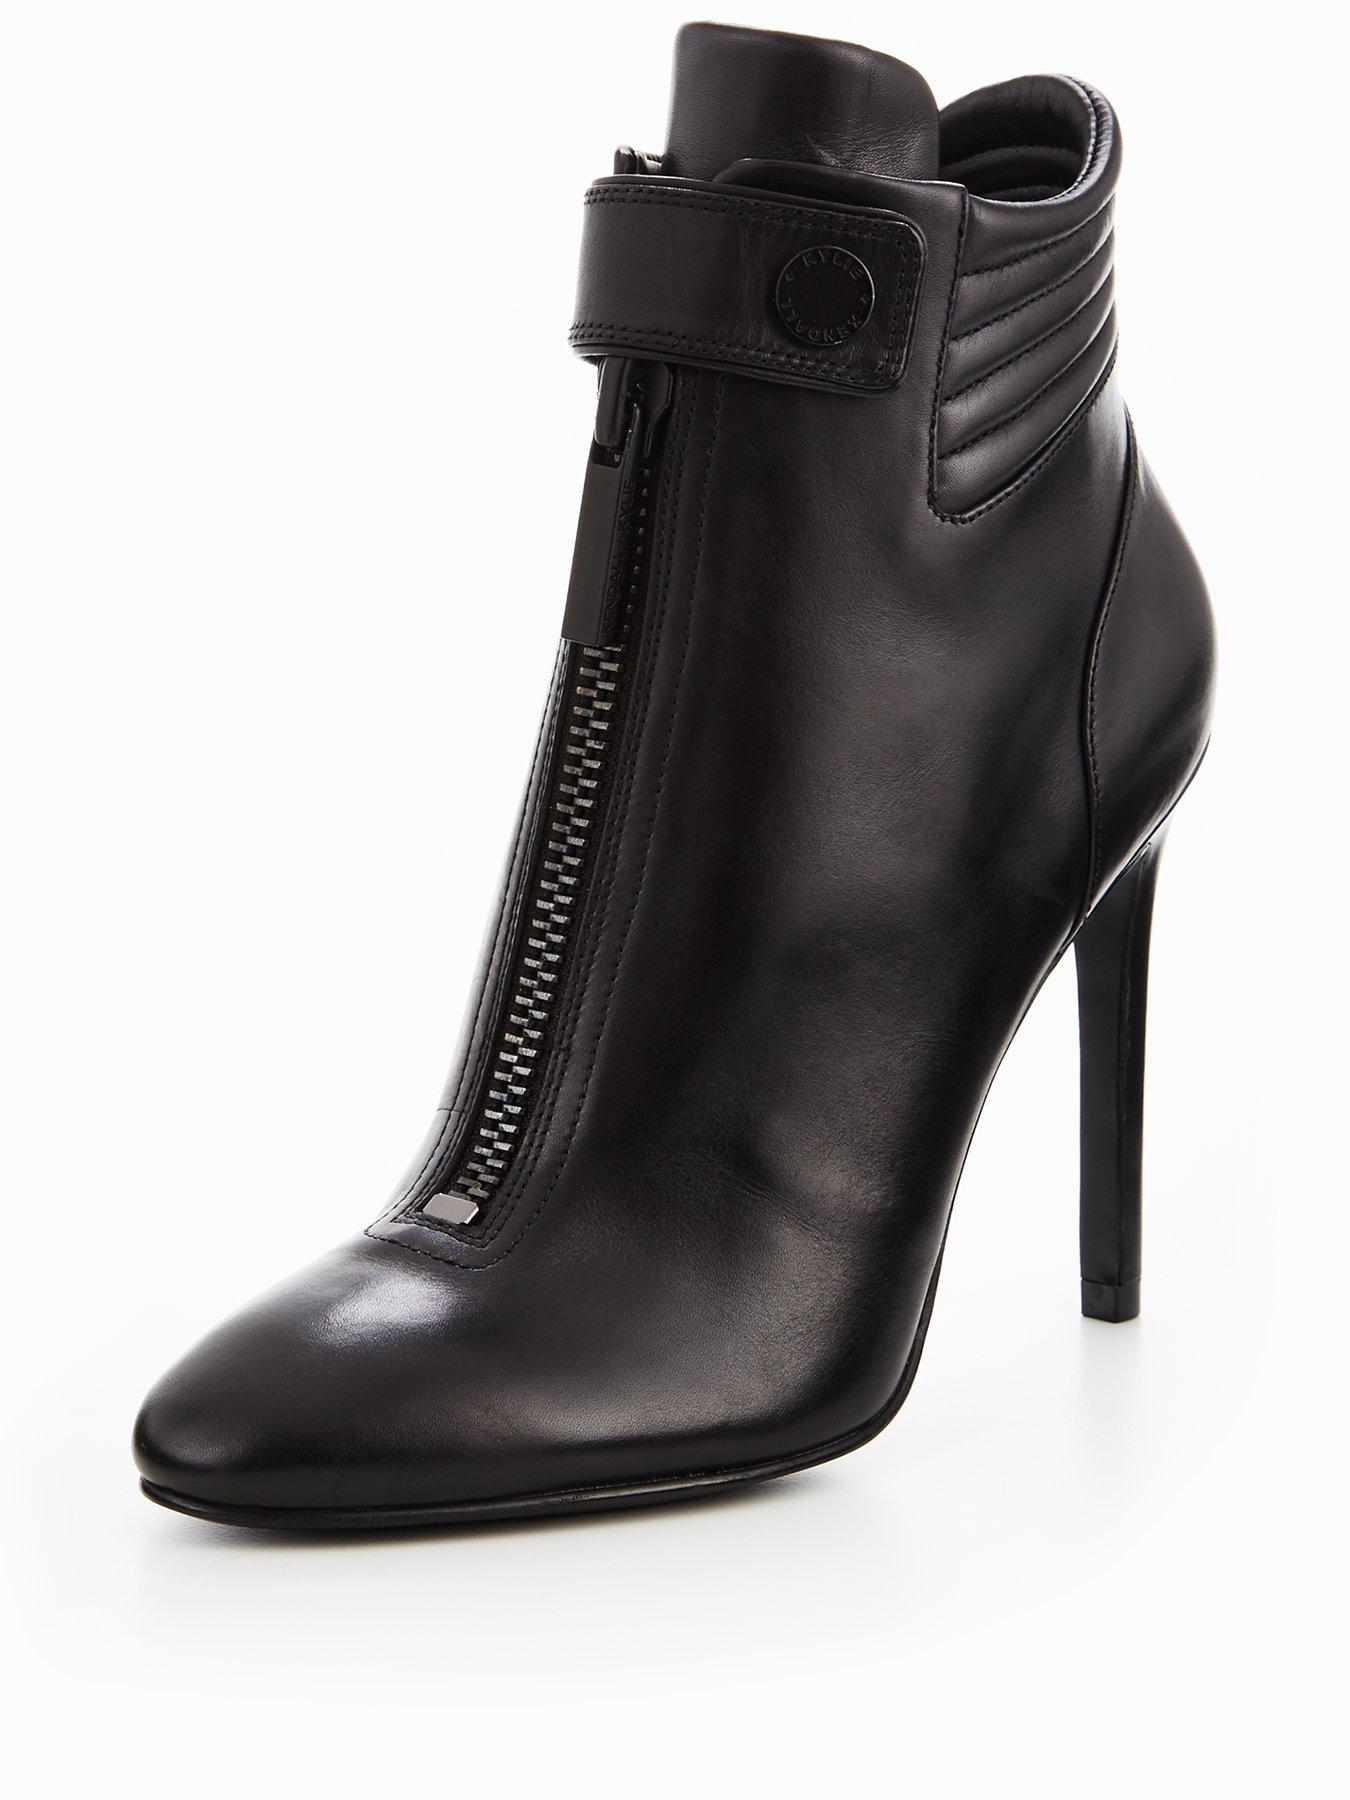 Kendall Kylie makayla ankle boot 1600184754 Women's Shoes Kendall Kylie Boots